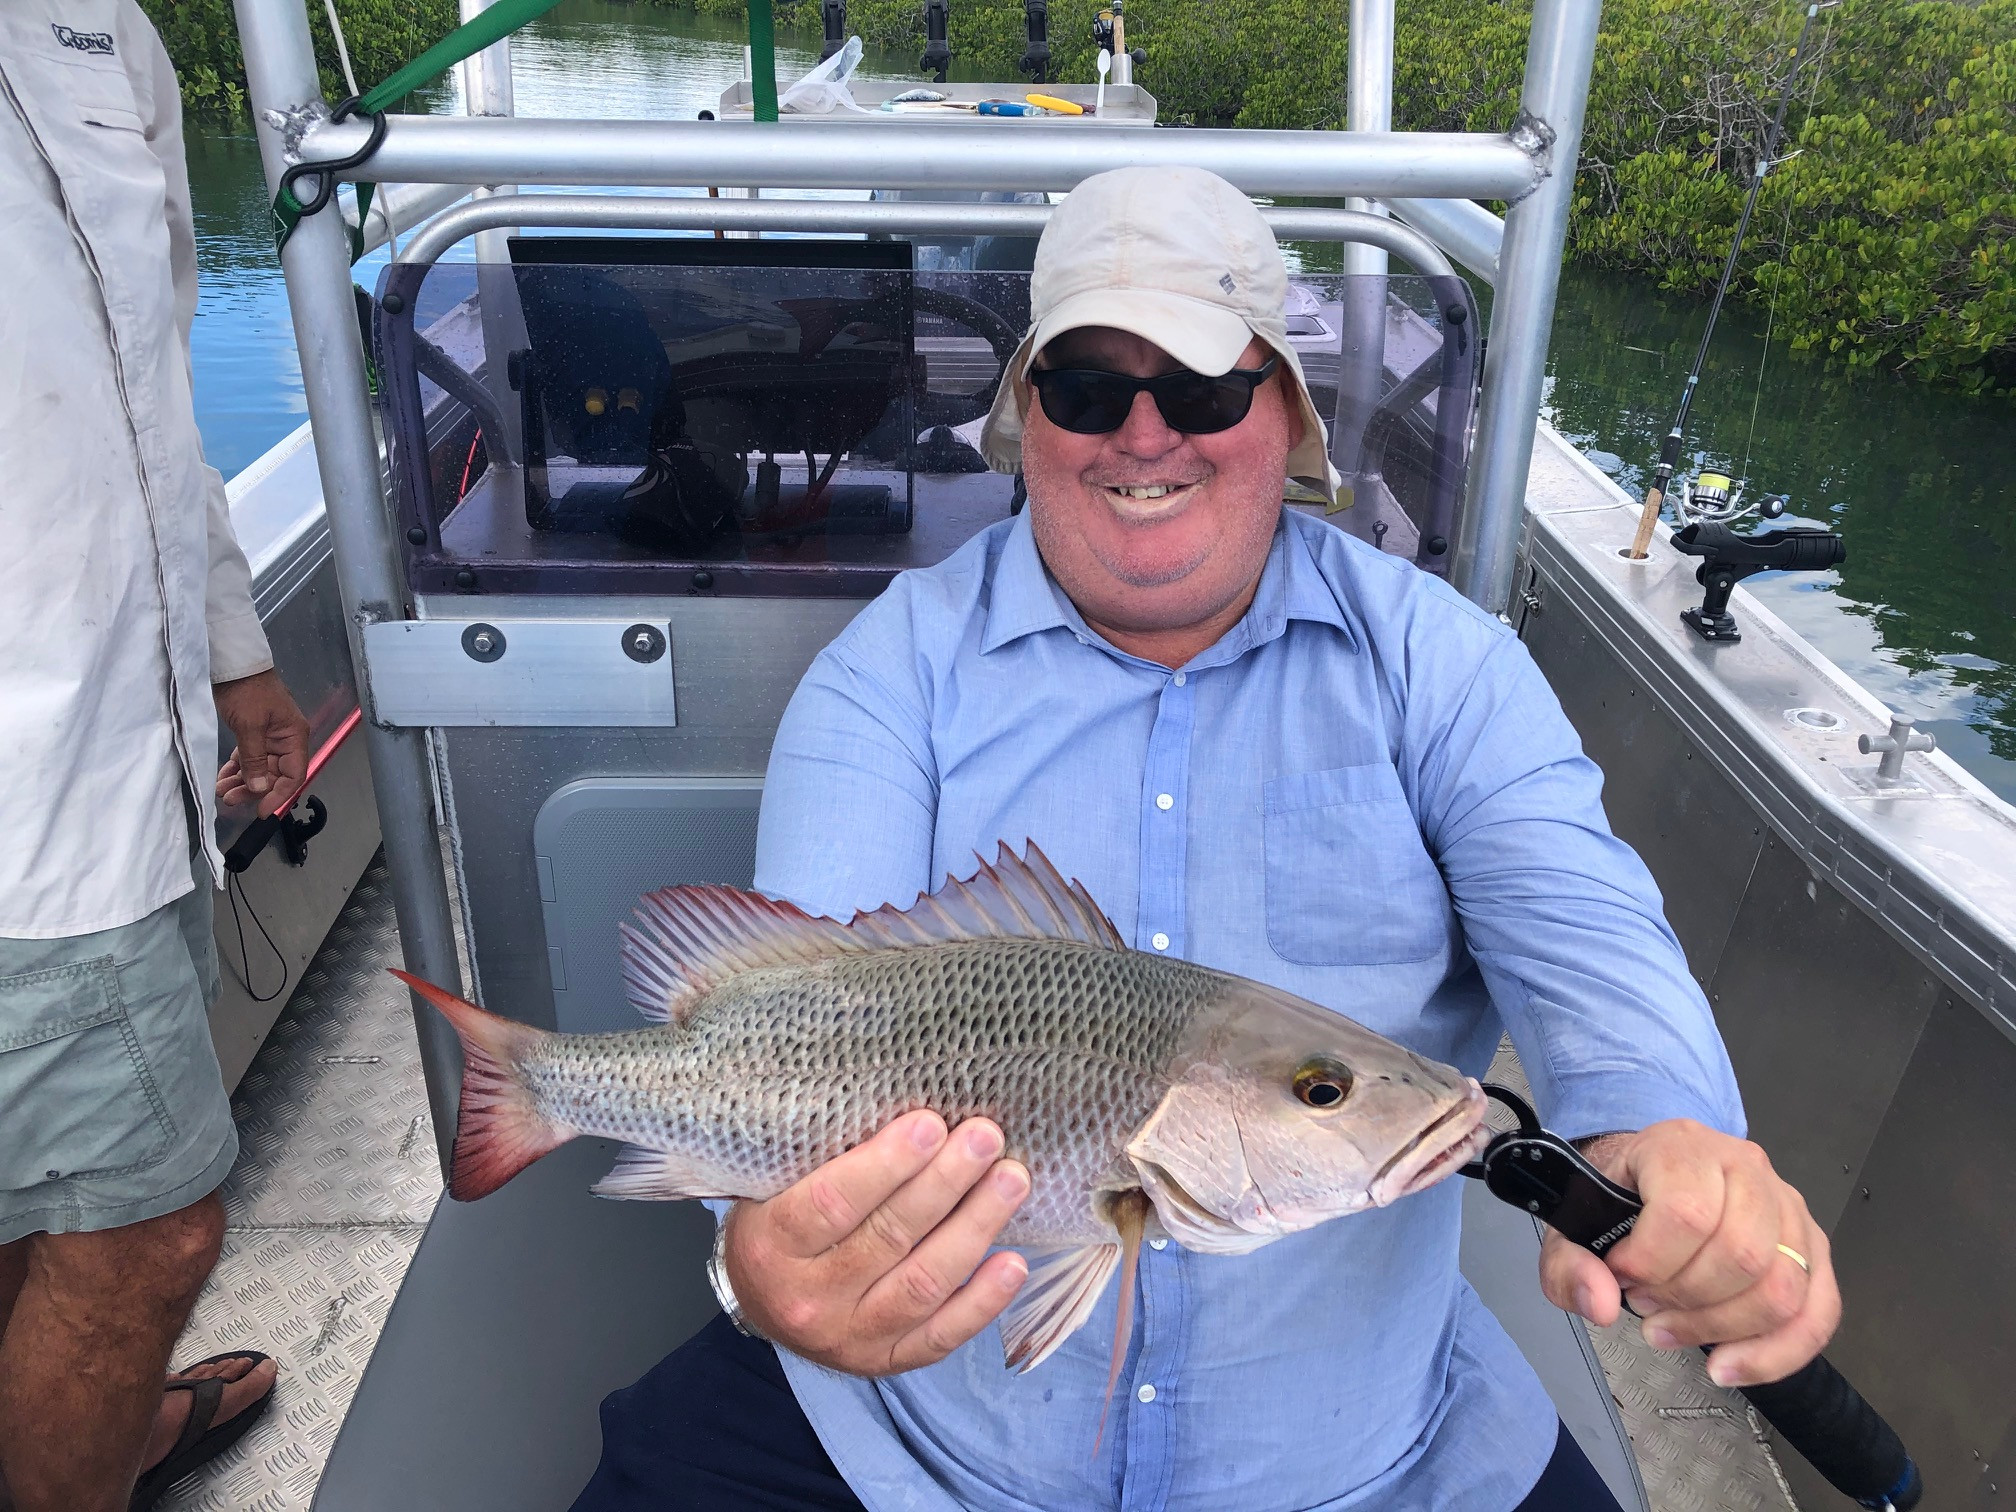 Private Full Day Fishing Charter up to 4